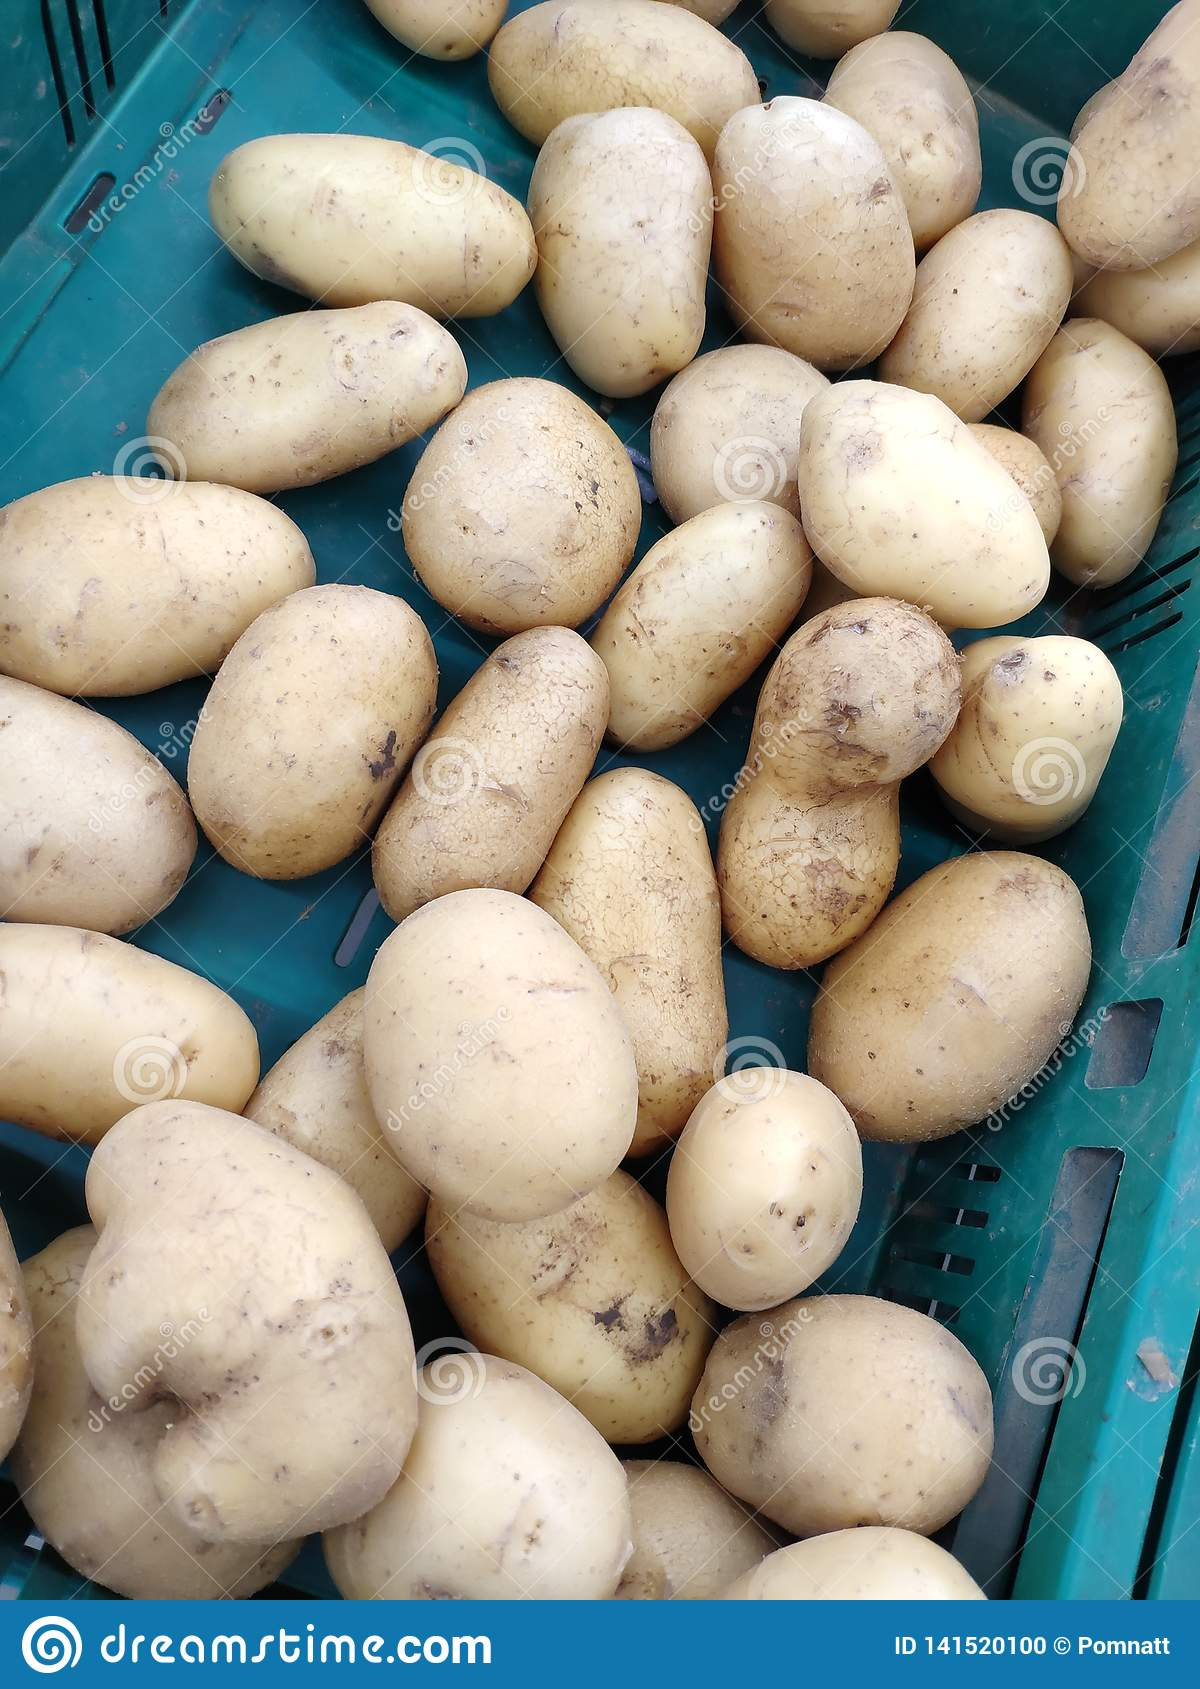 Potatos en caso de que